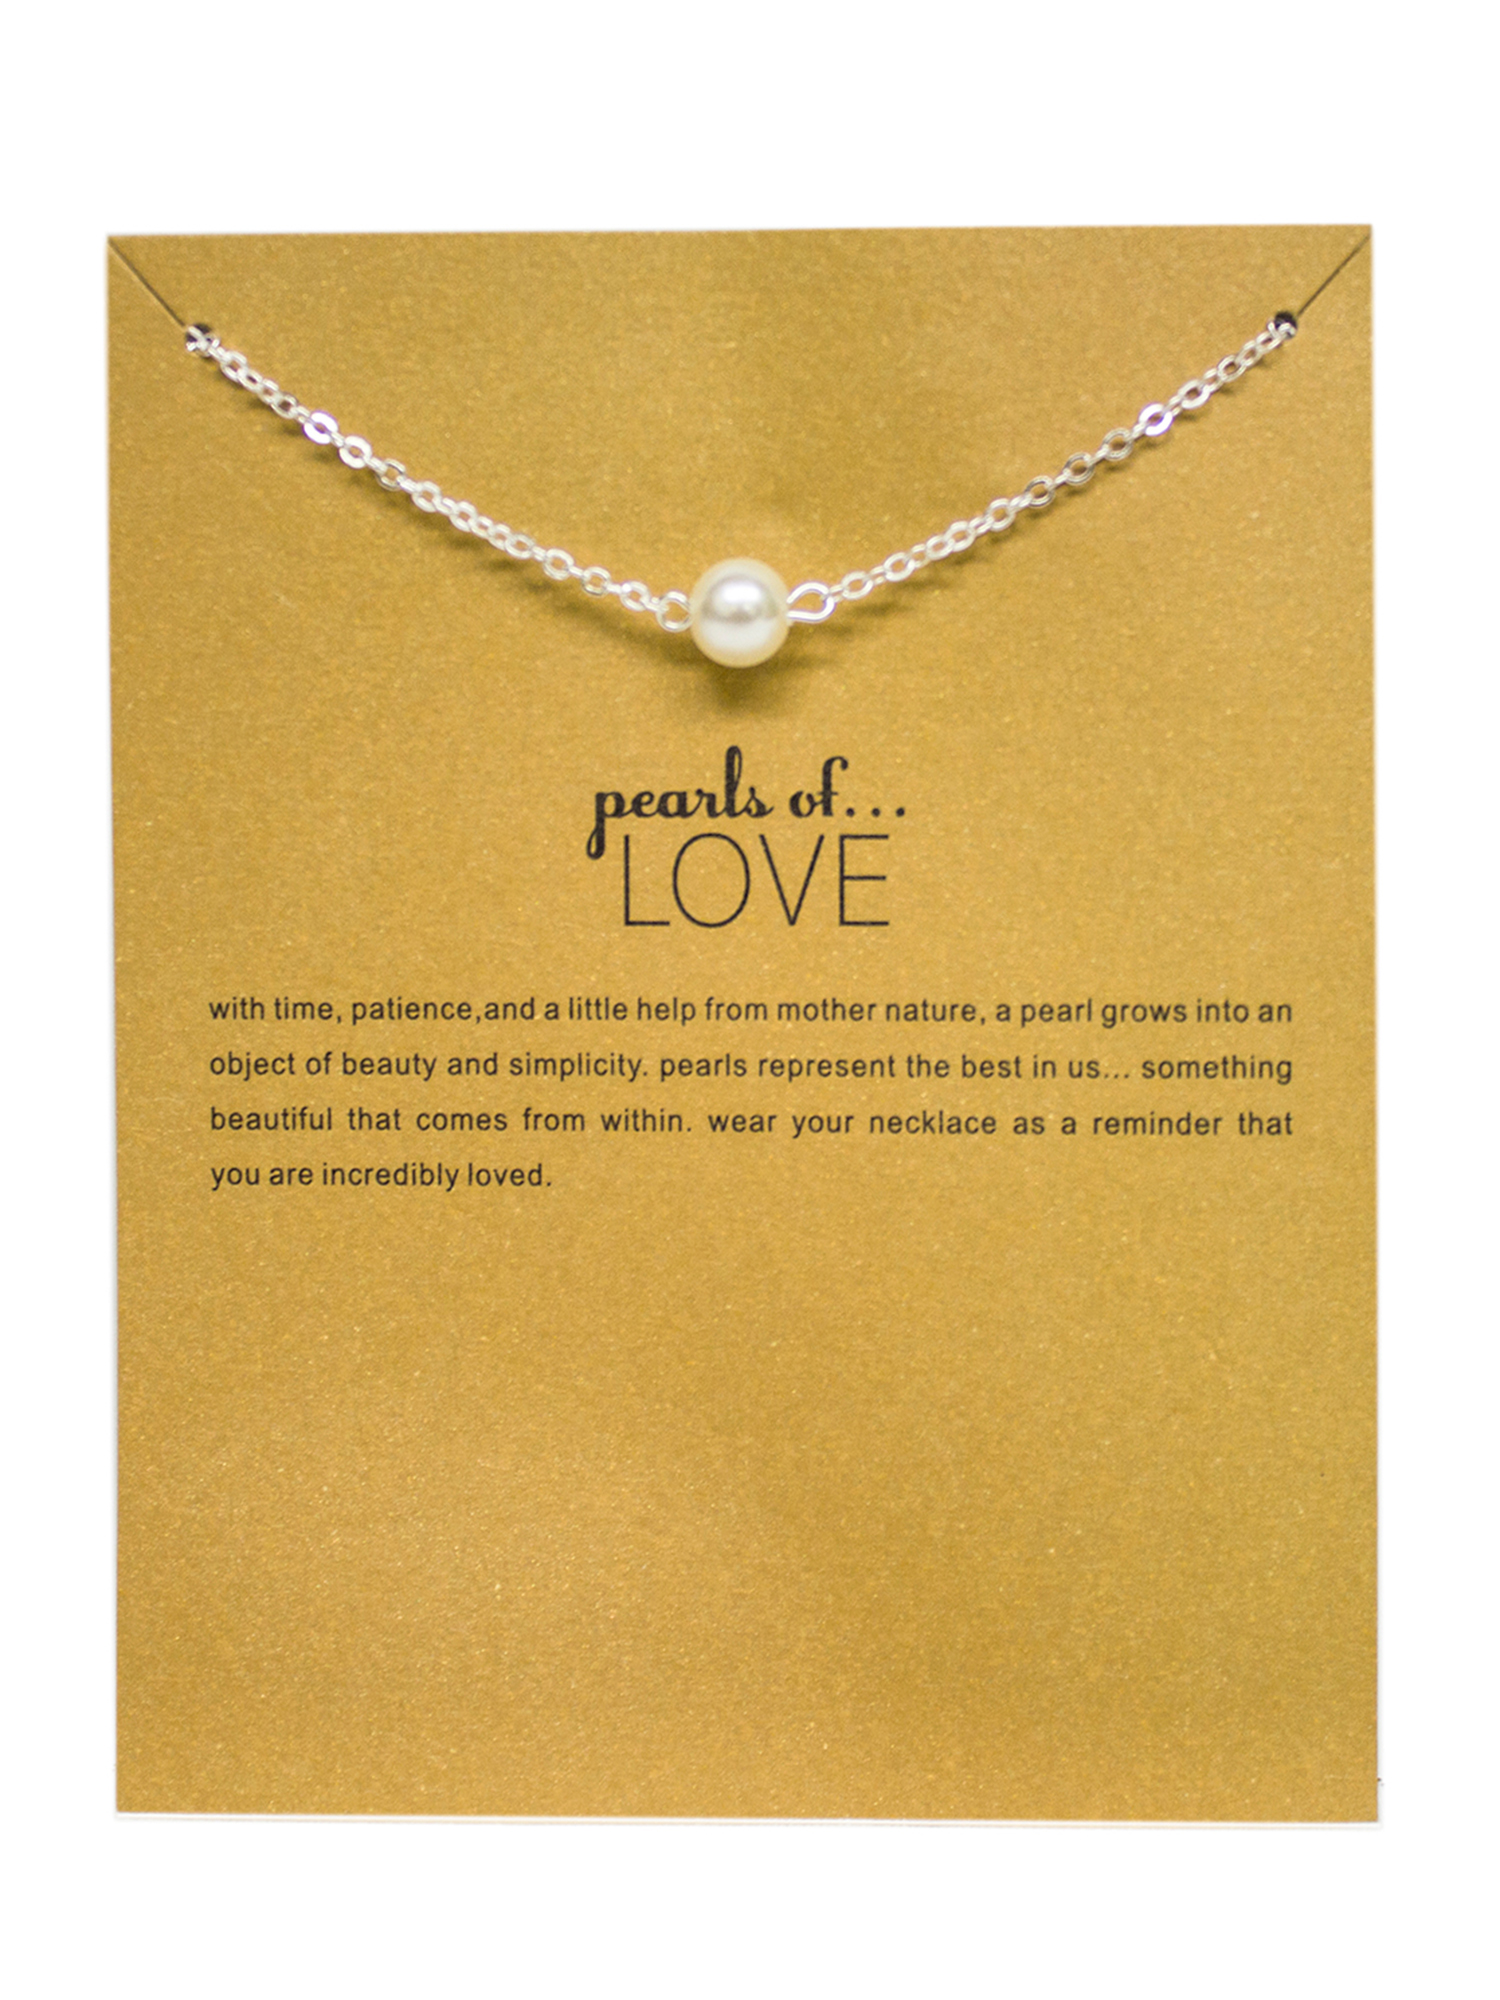 StylesILove Inspirational Quote Valentine's Day Clavicle Chain Women's Necklace in Original Package (Silver, Pearls of Love)